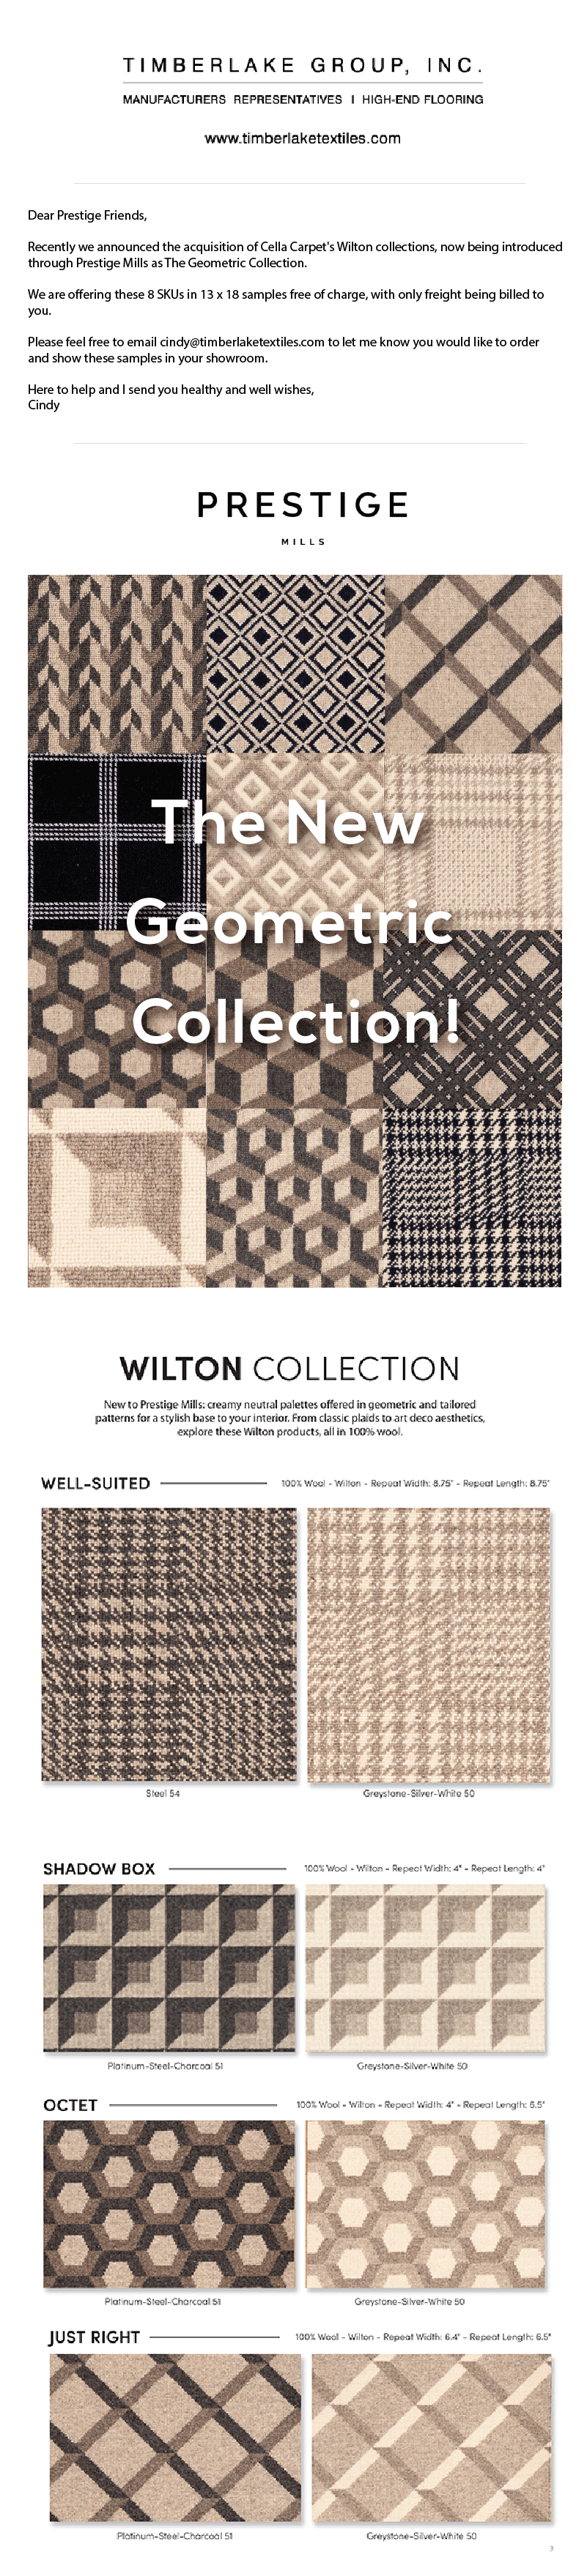 Image of Cella Carpet Wiltons through Prestige Mills